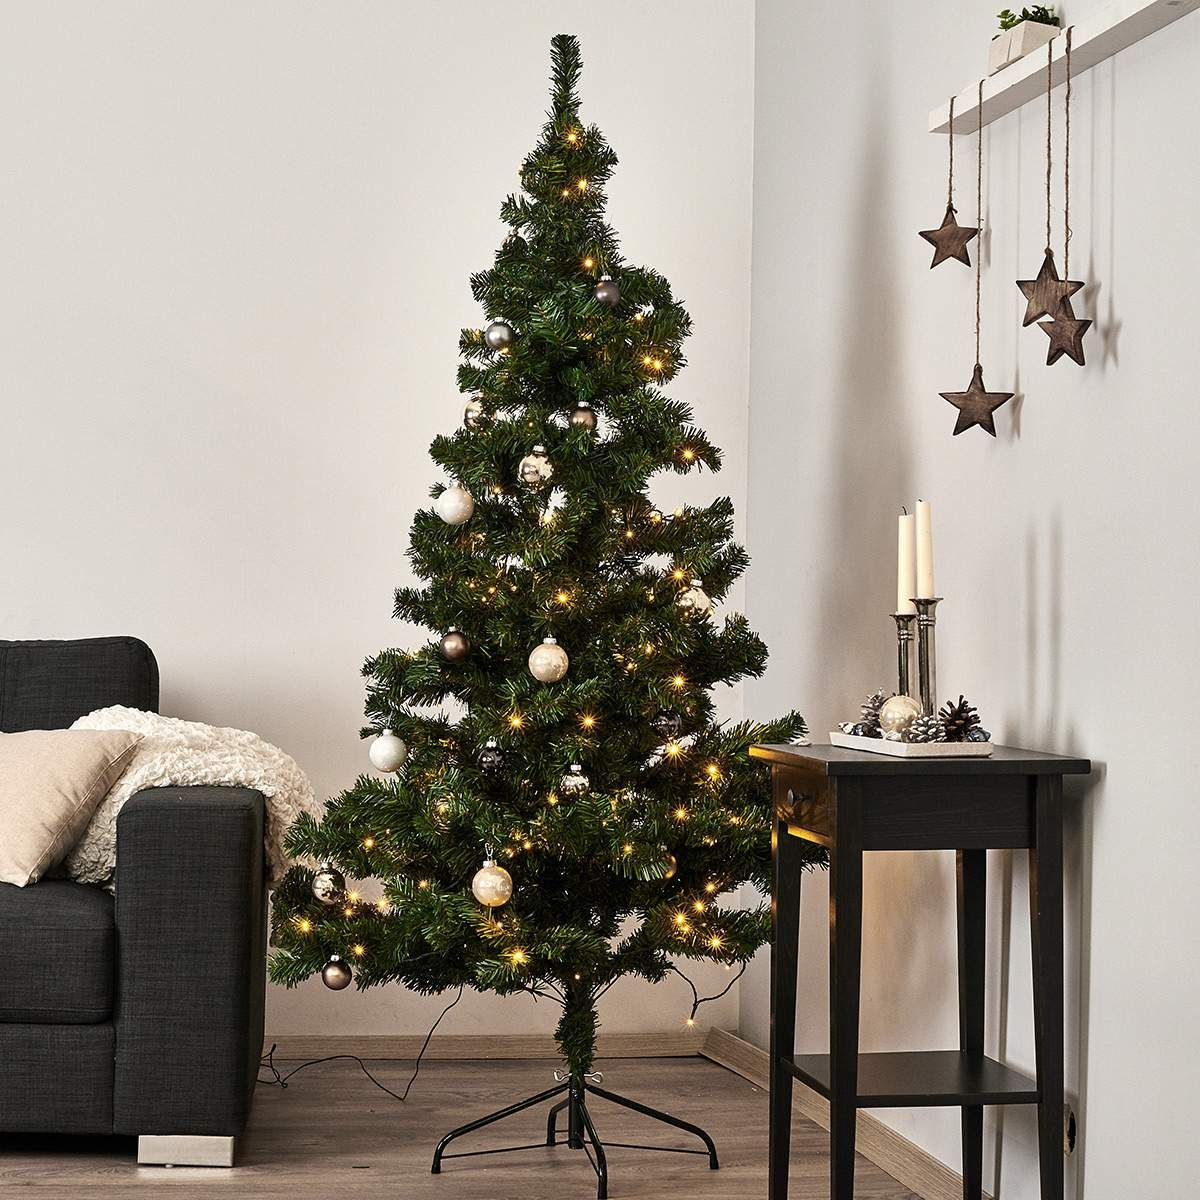 Sapin De Noel 210 Best Season Sapin d'intérieur LED de 210 cm Decorations vert Arbre